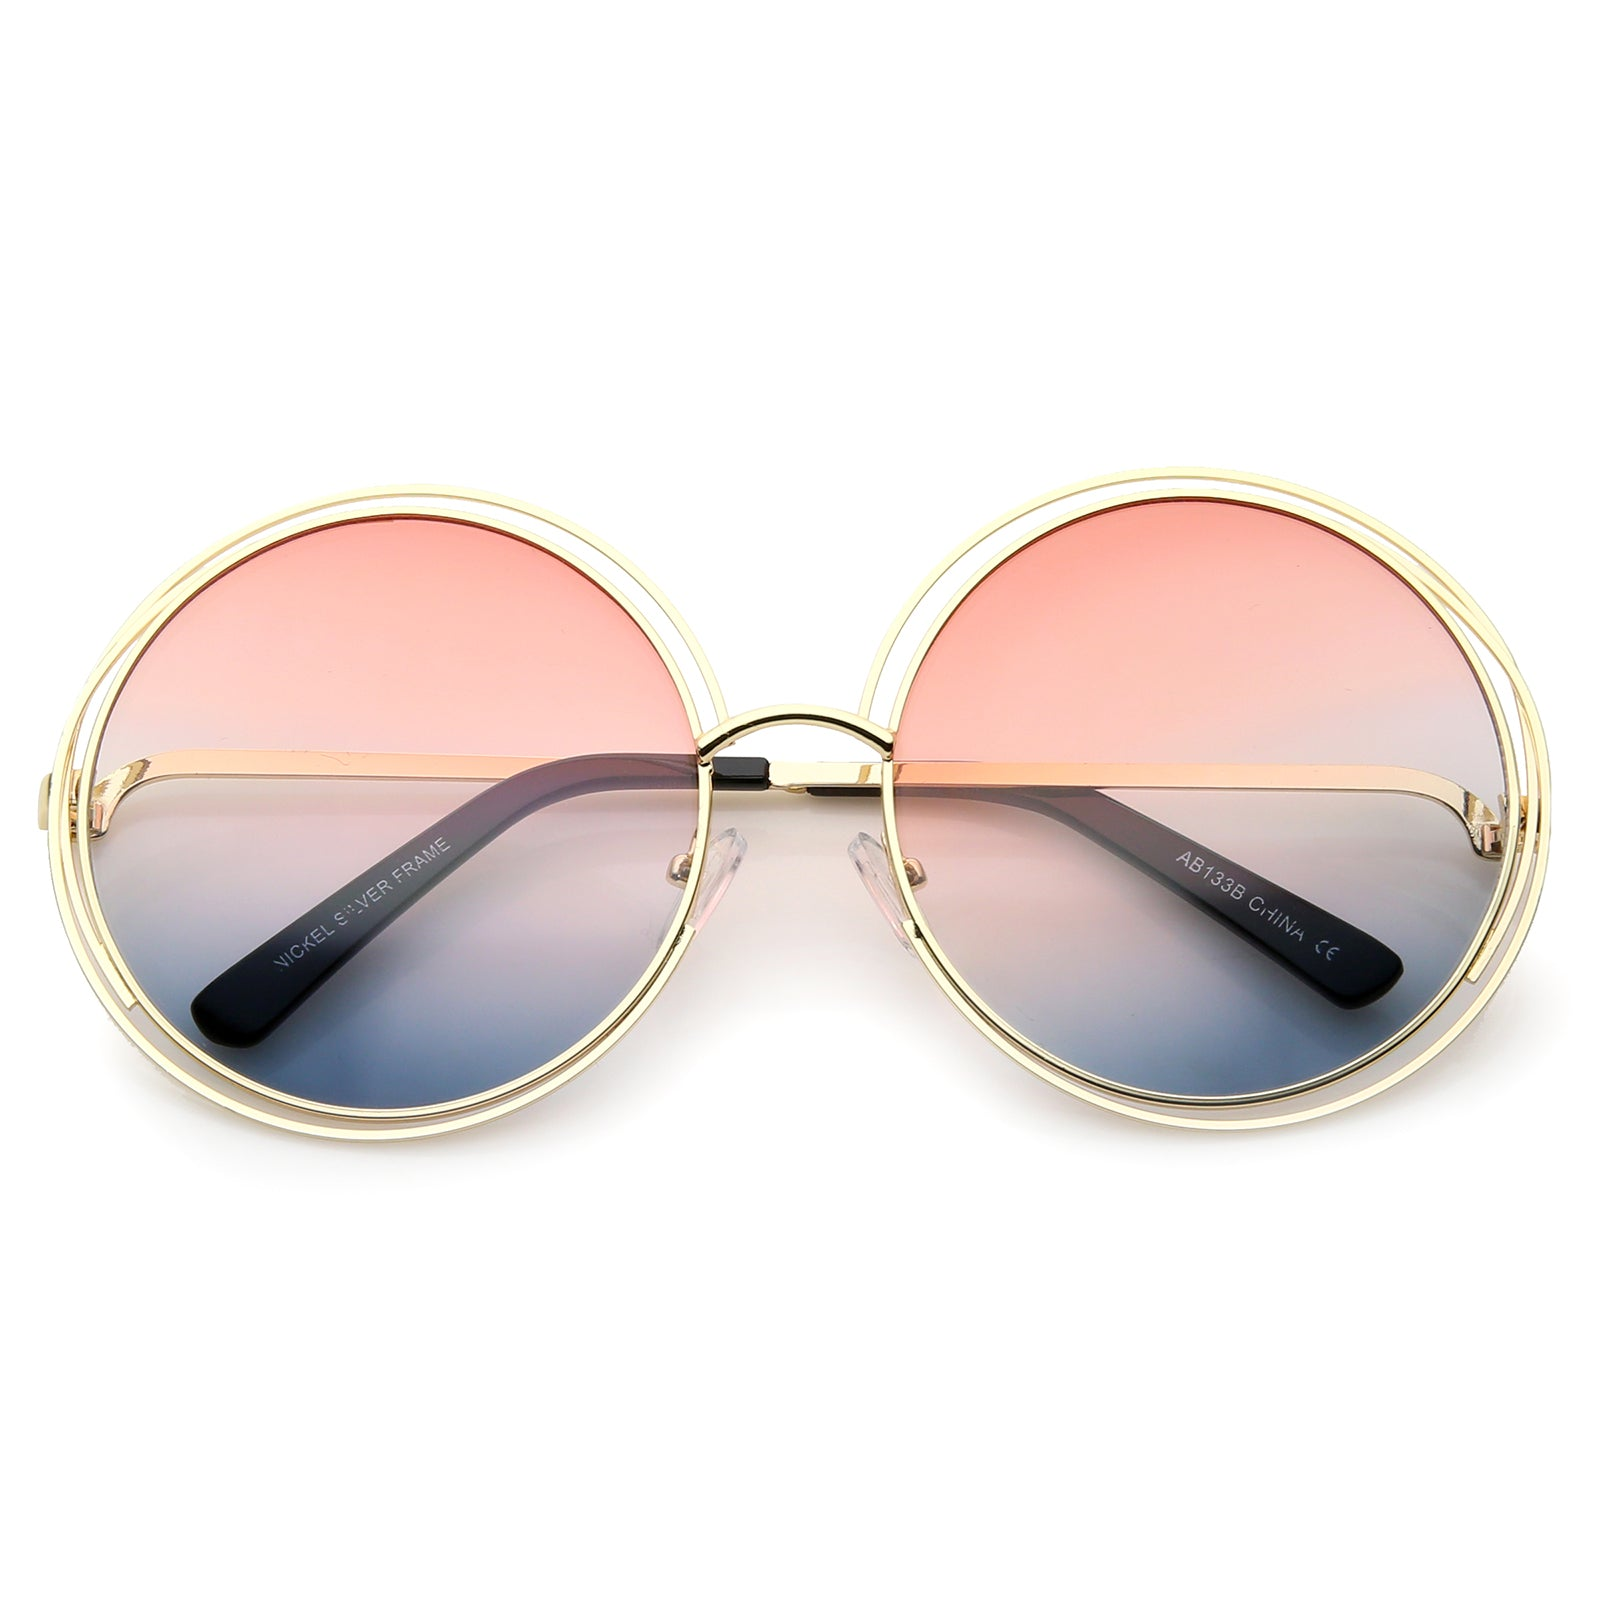 Oversize Wire Frame Gradient Two-Tone Color Lens Round Sunglasses 61mm - sunglass.la - 21